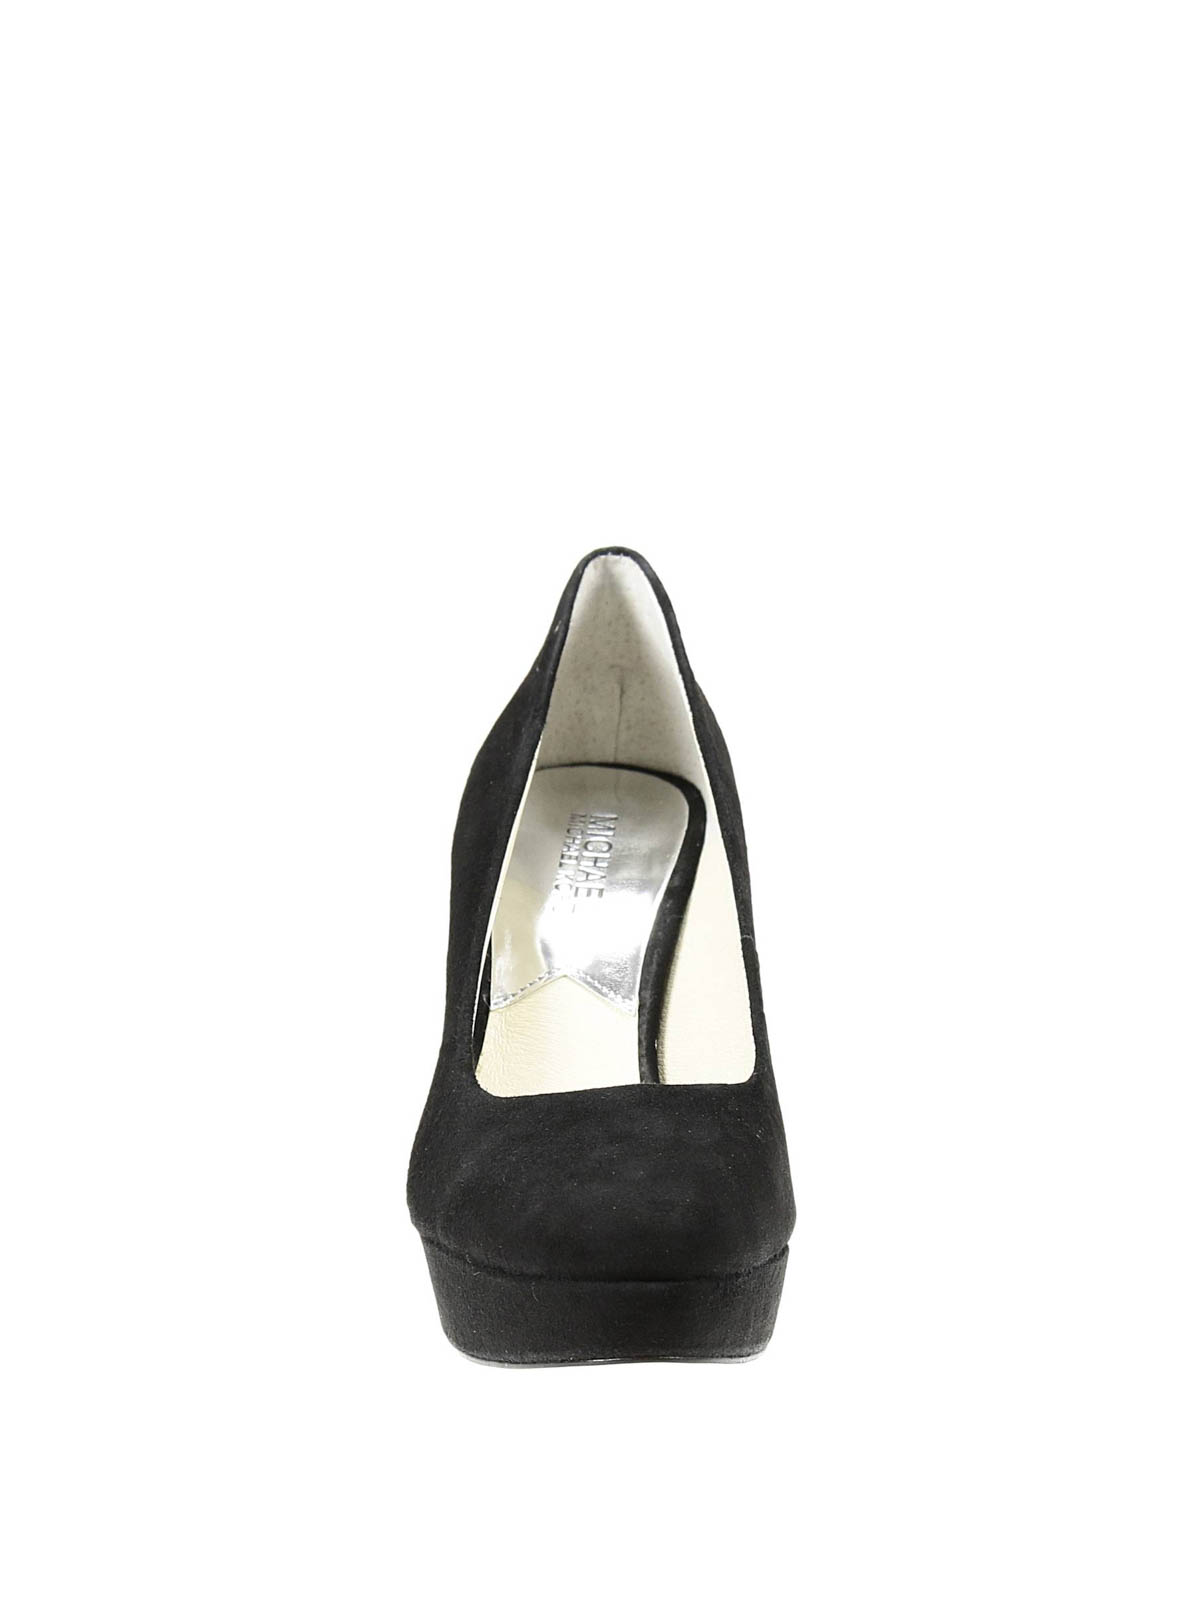 suede pumps with chain by michael kors court shoes ikrix. Black Bedroom Furniture Sets. Home Design Ideas